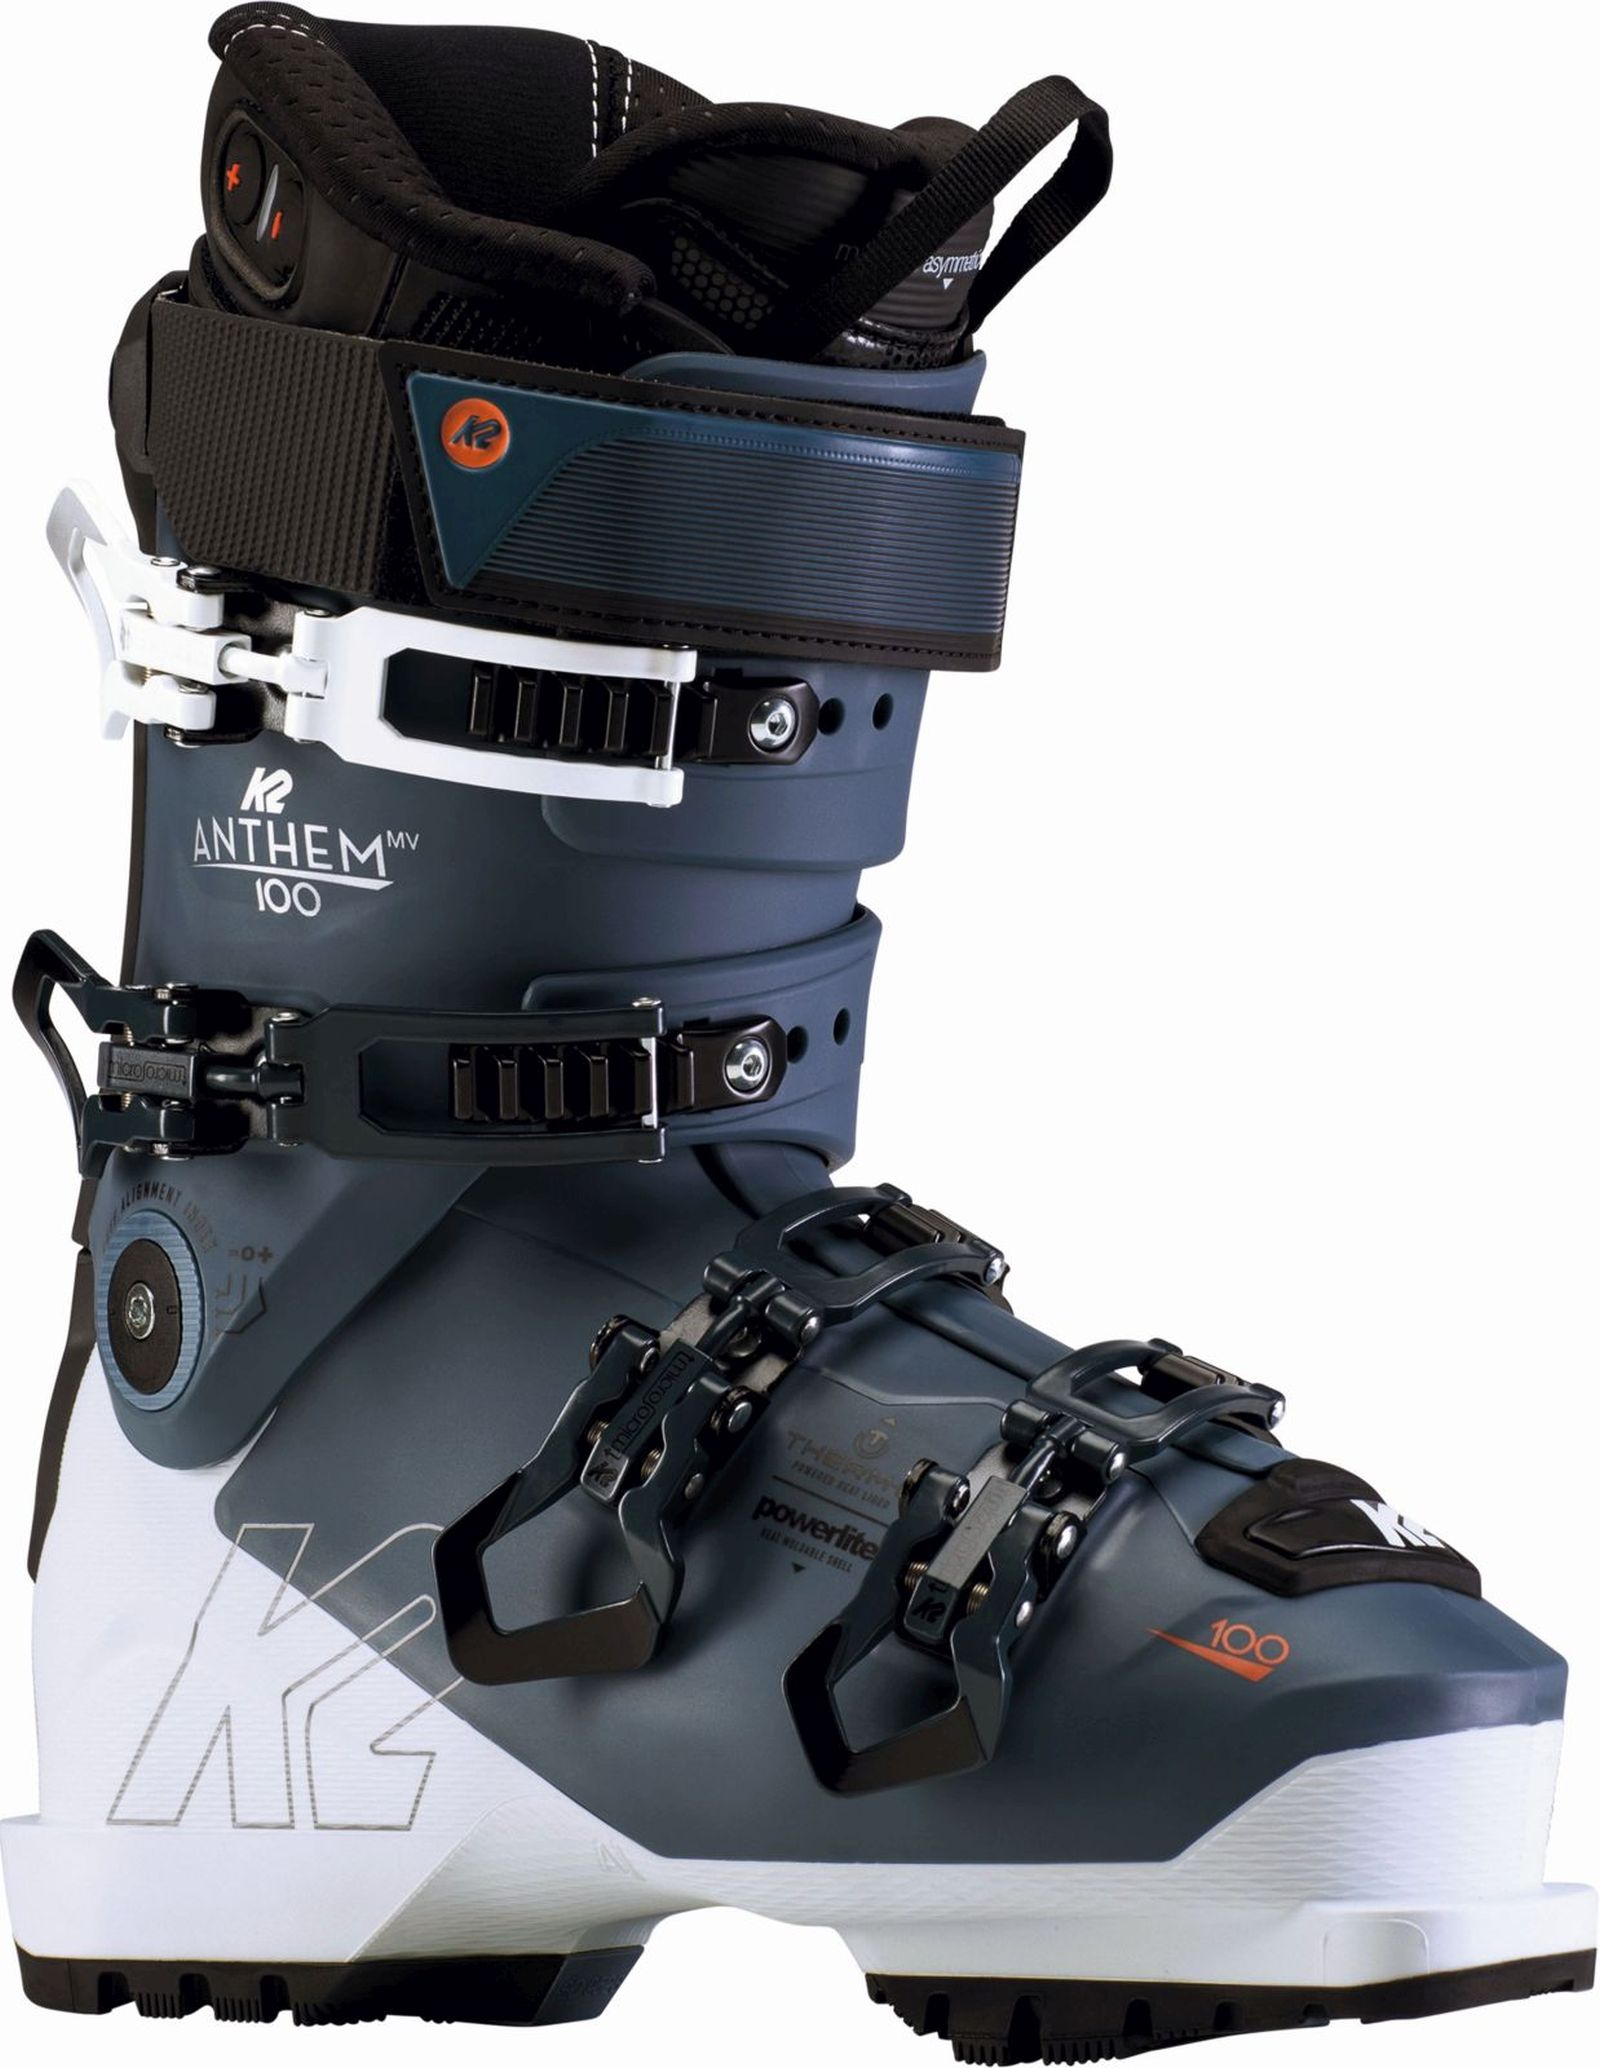 K2 Anthem 100 MV Heat Gripwalk 255